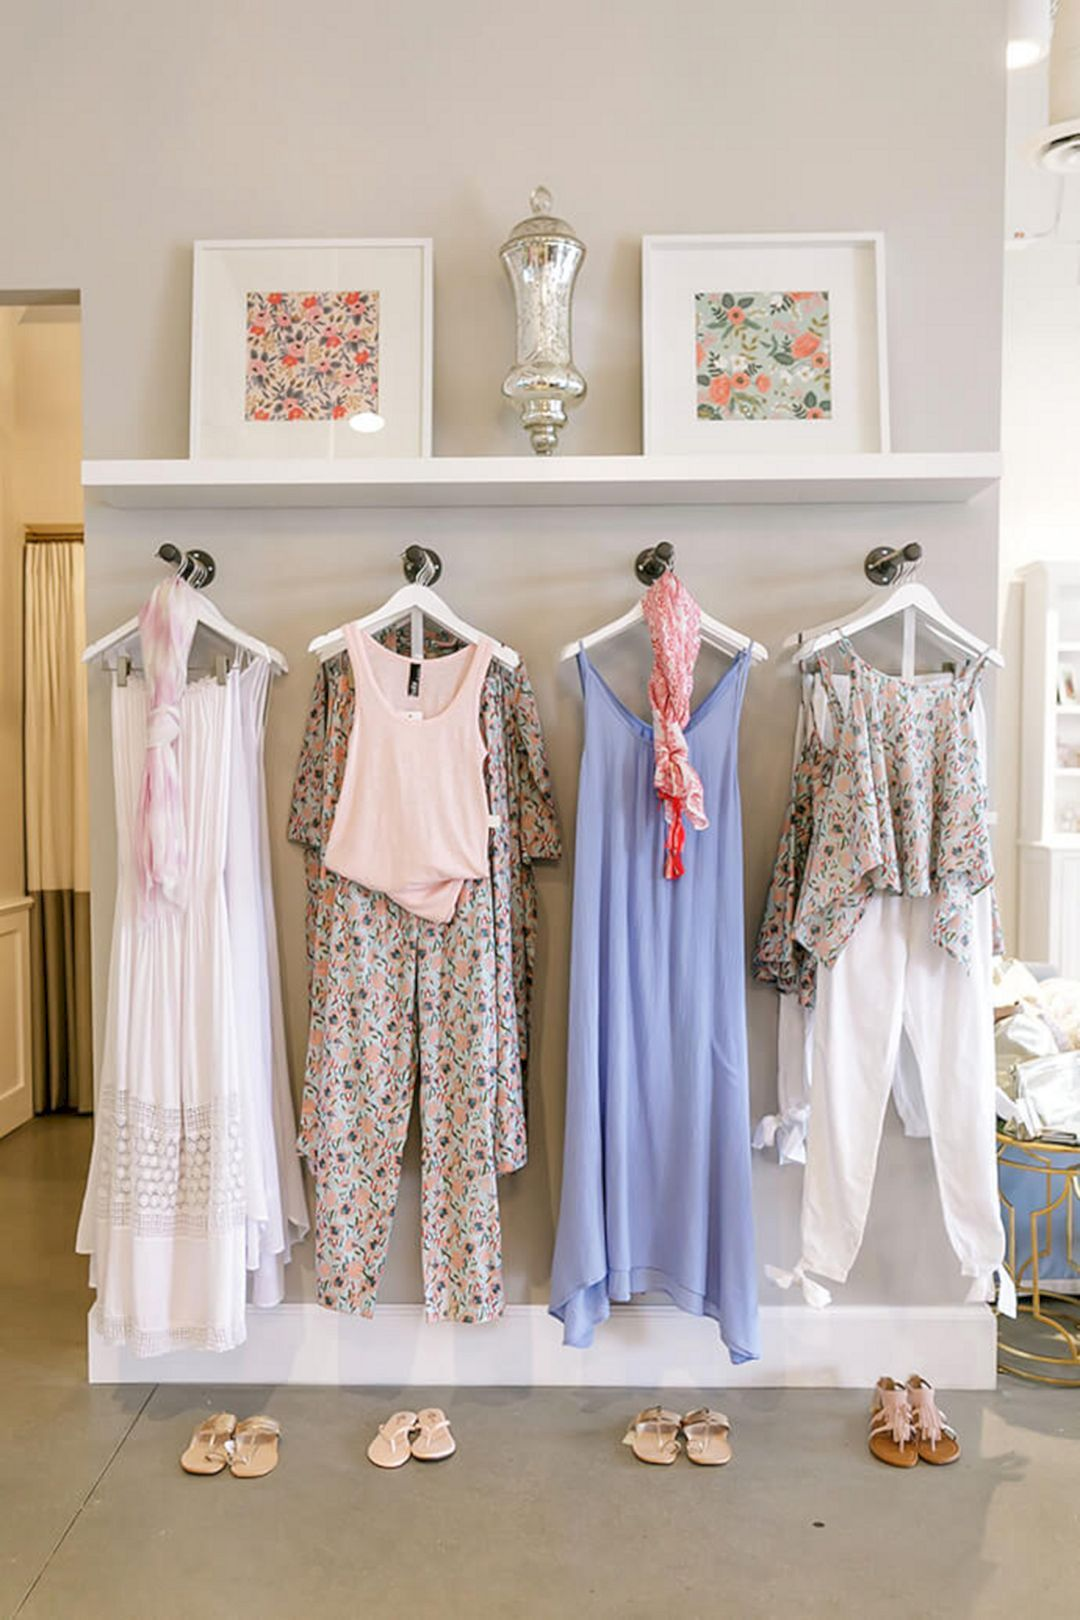 Best 35 Clothing Boutique Interior Design Ideas You Need To Try ...